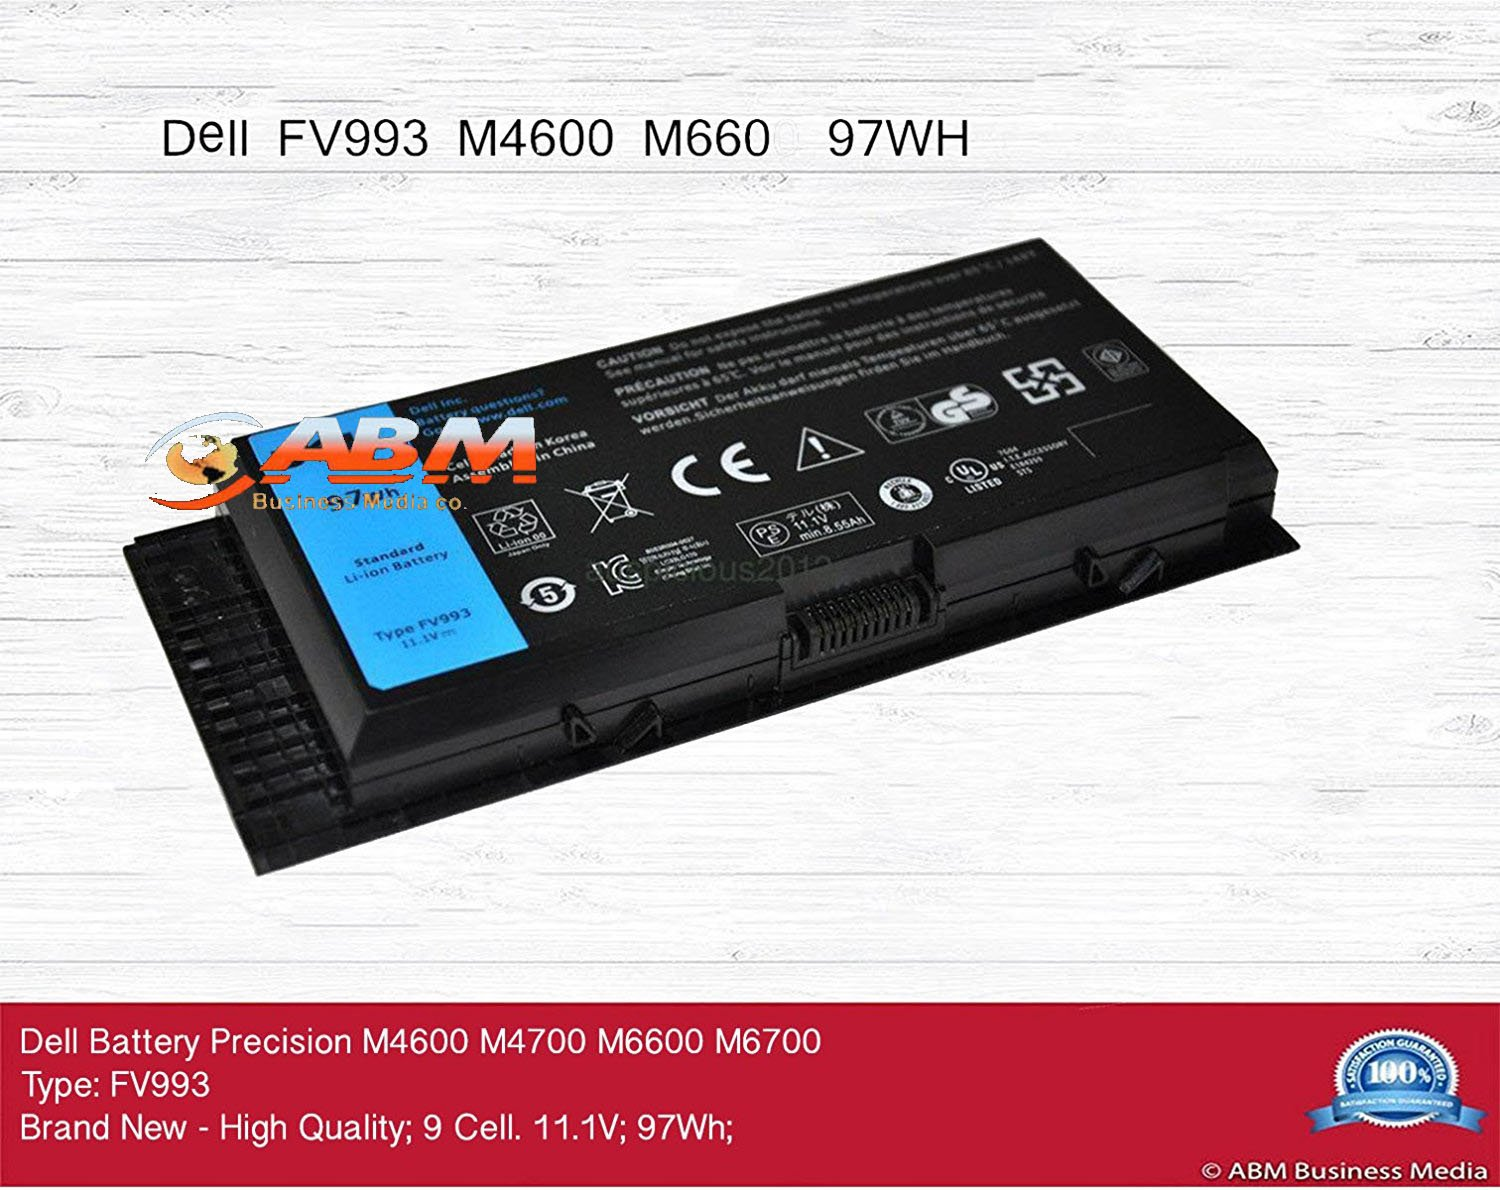 FV993 Dell Battery Precision M4600 M4700 M6600 M6700 97Wh 9 Cells OEM Compatible by ABM